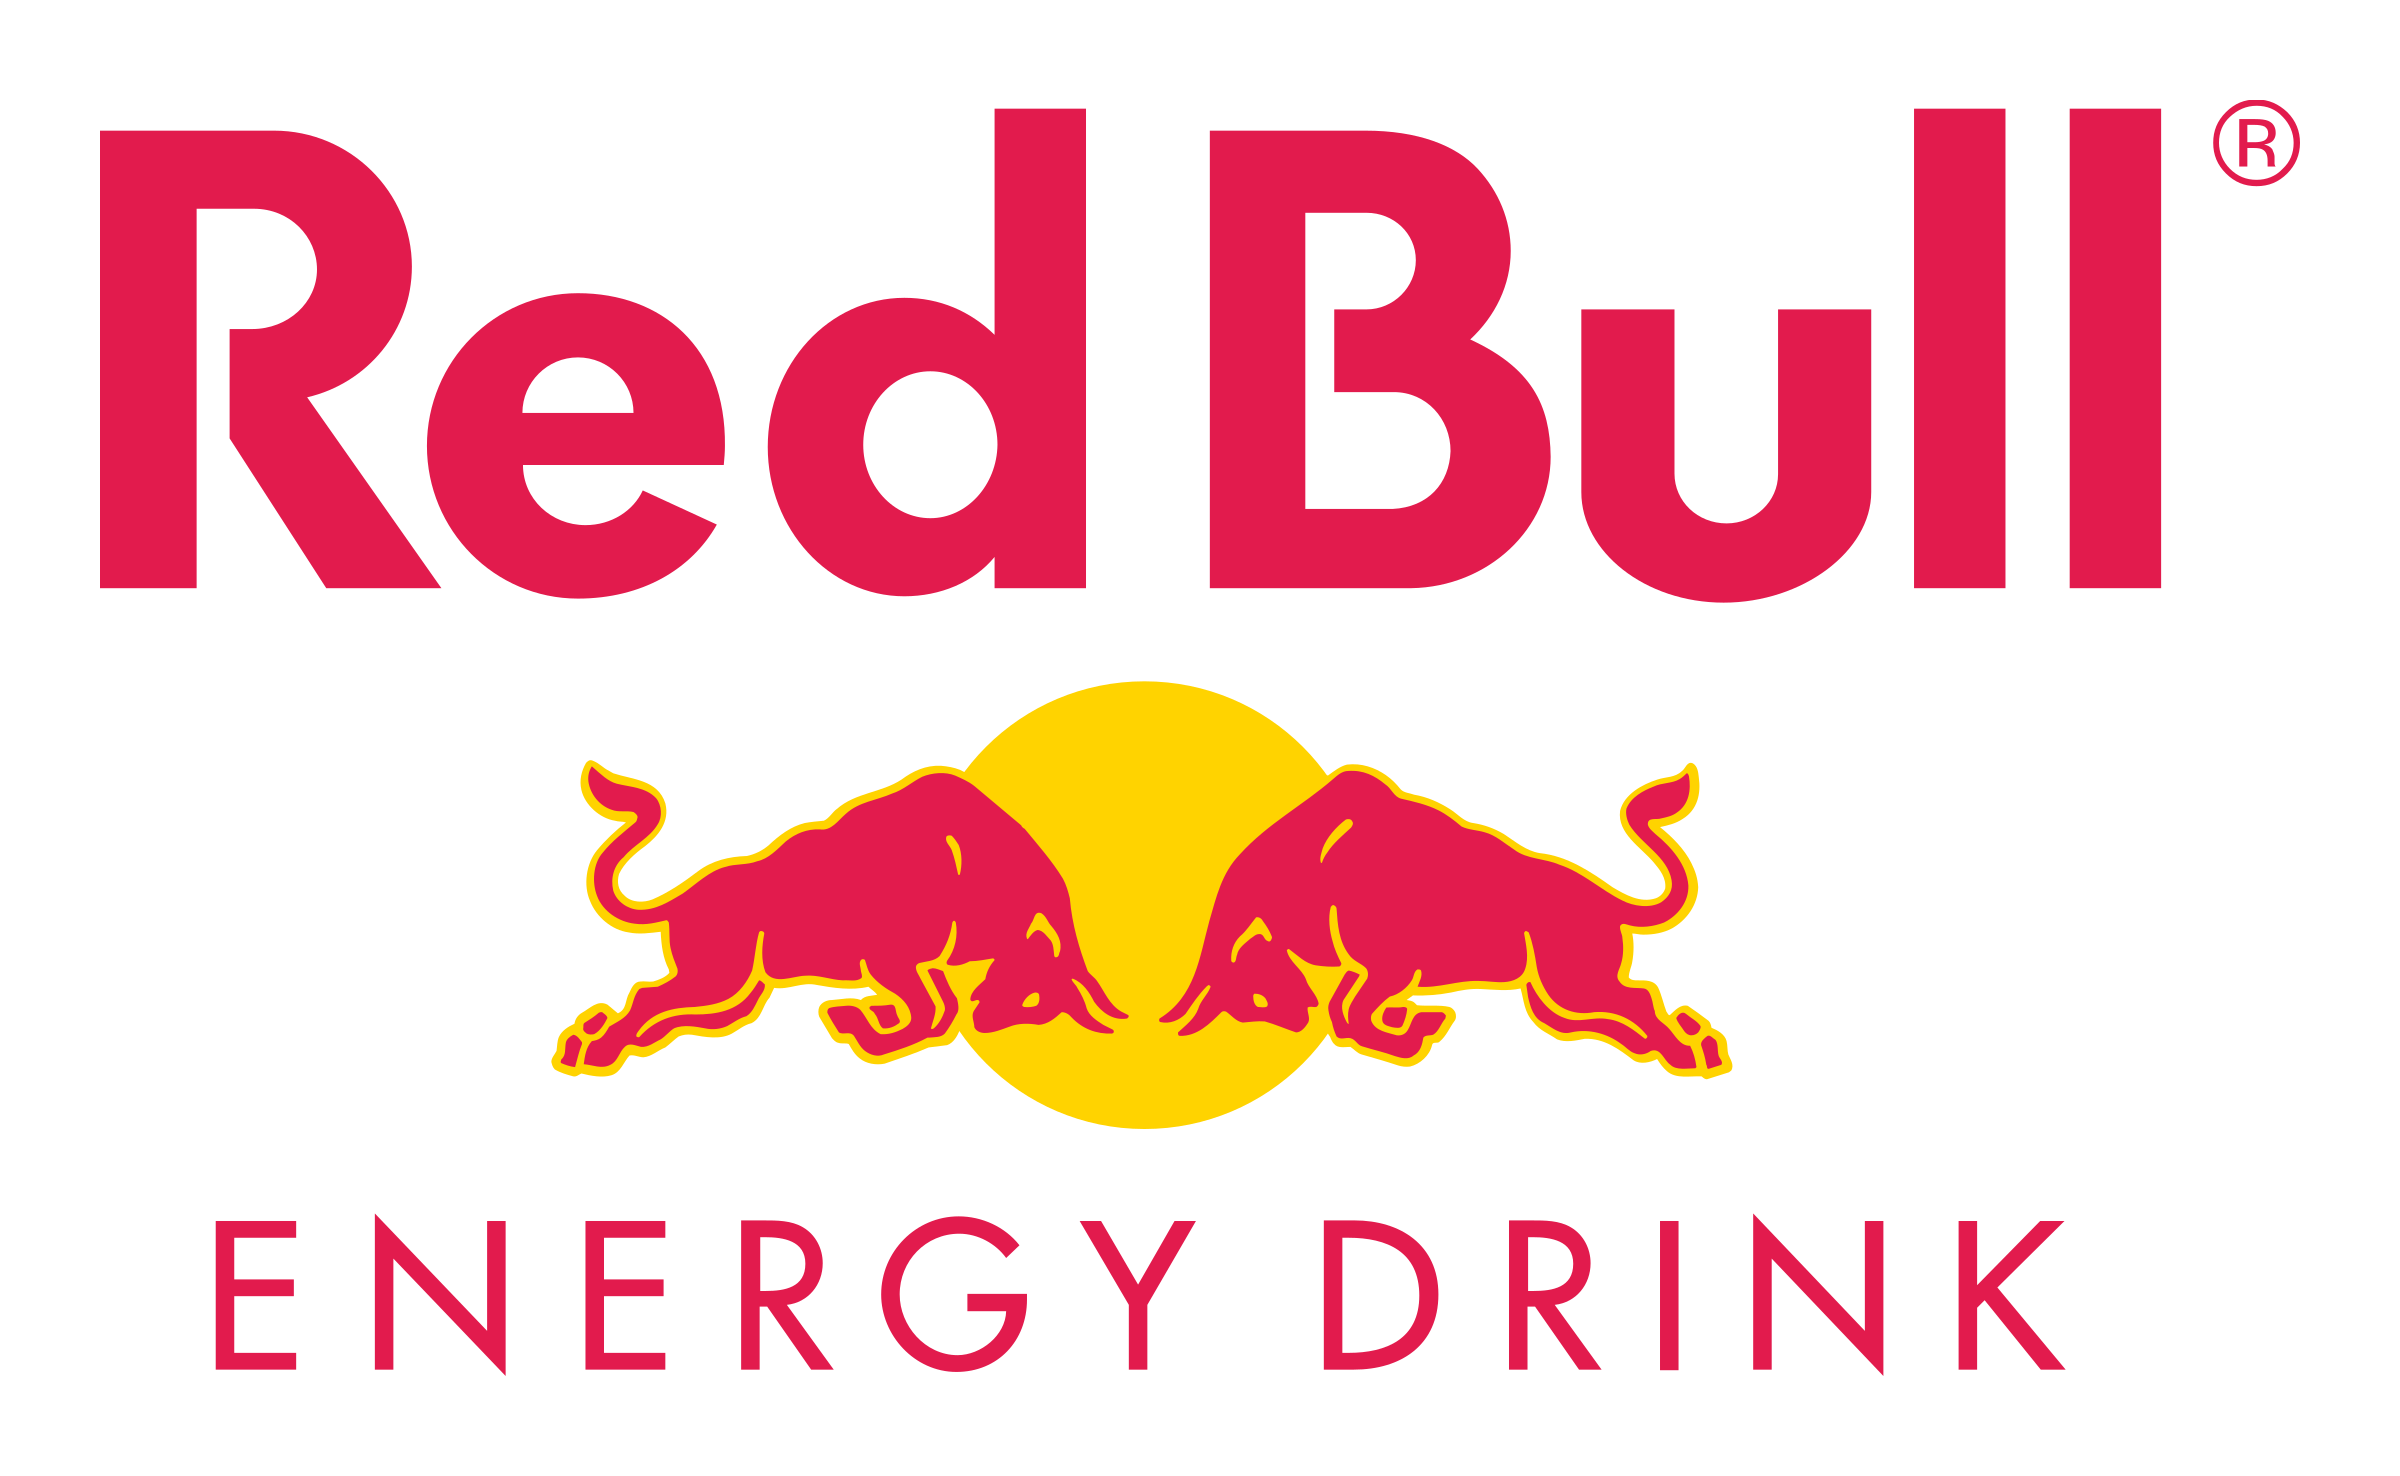 red bull png